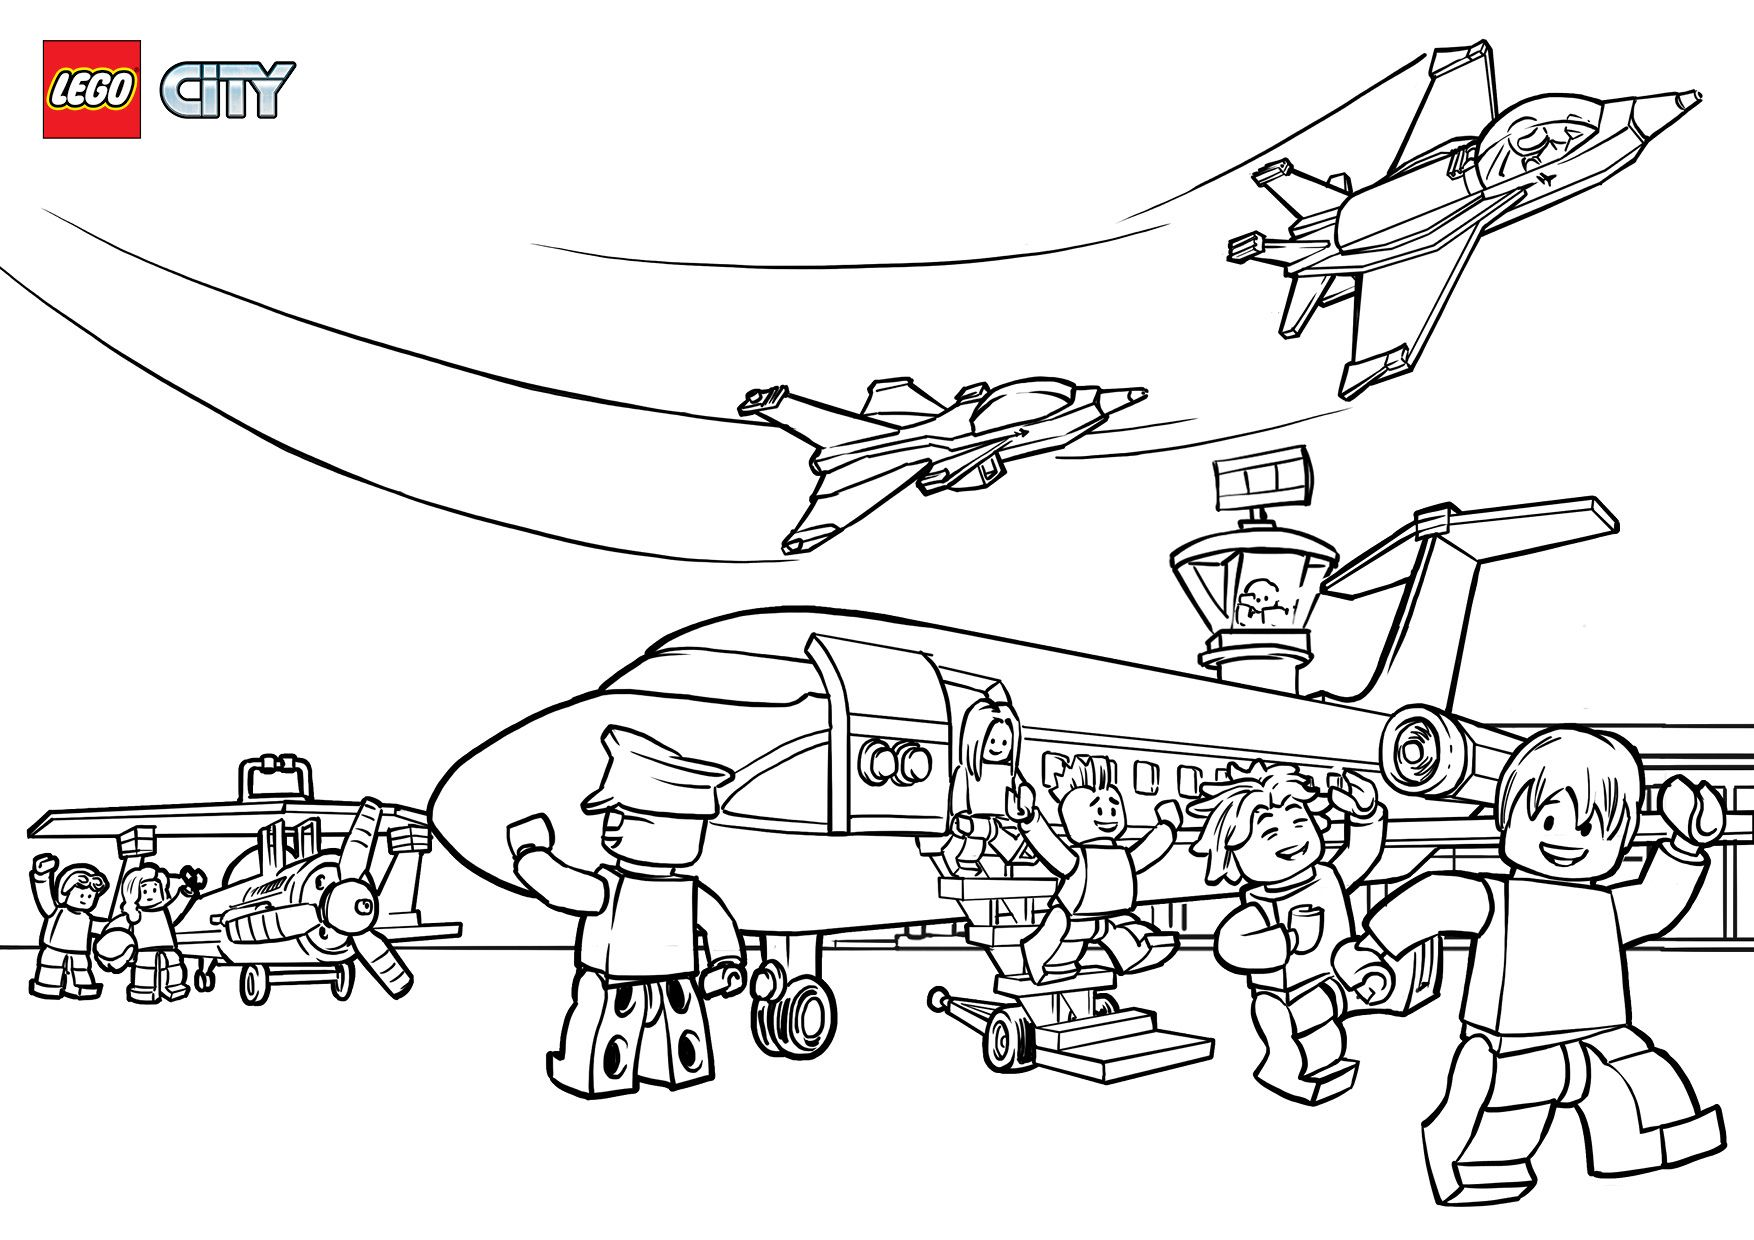 Lego Airport Coloring Pages